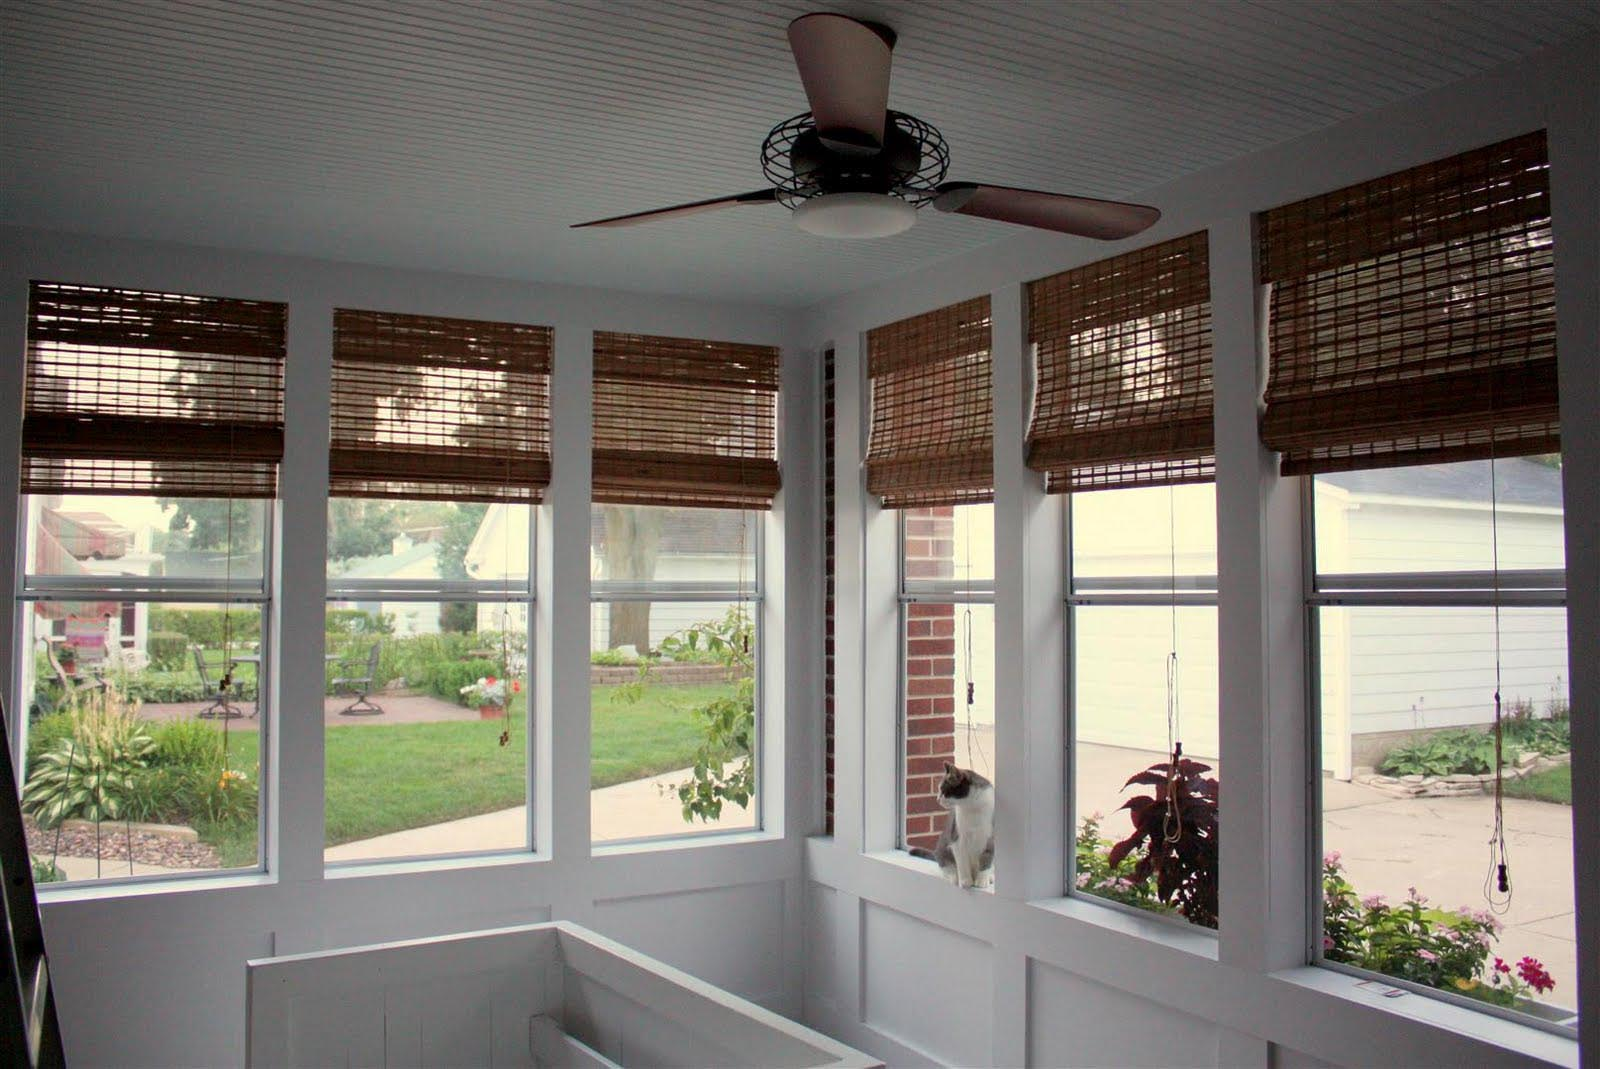 Outdoor Bamboo Shades For Screened Porch Window